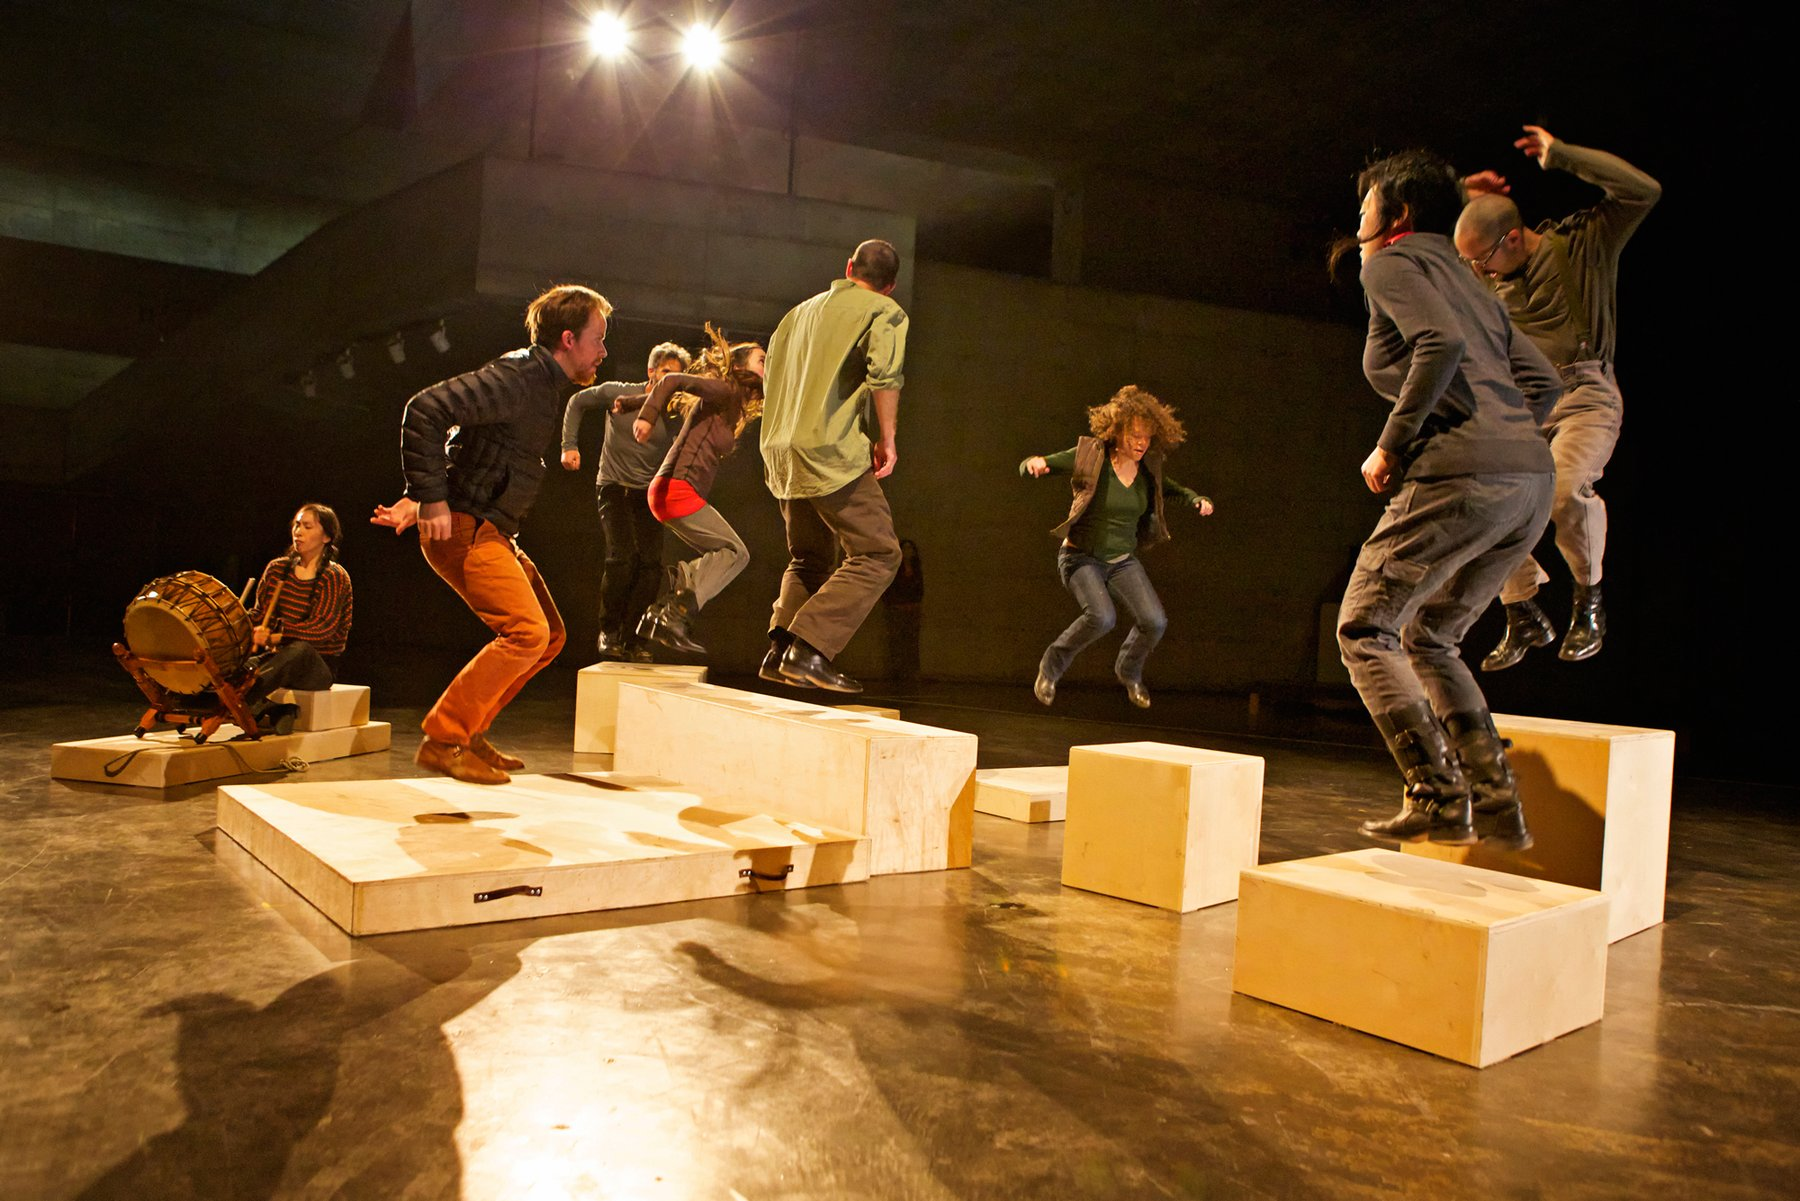 A group of figures move around wooden blocks, Anna Halpern Soundtracks